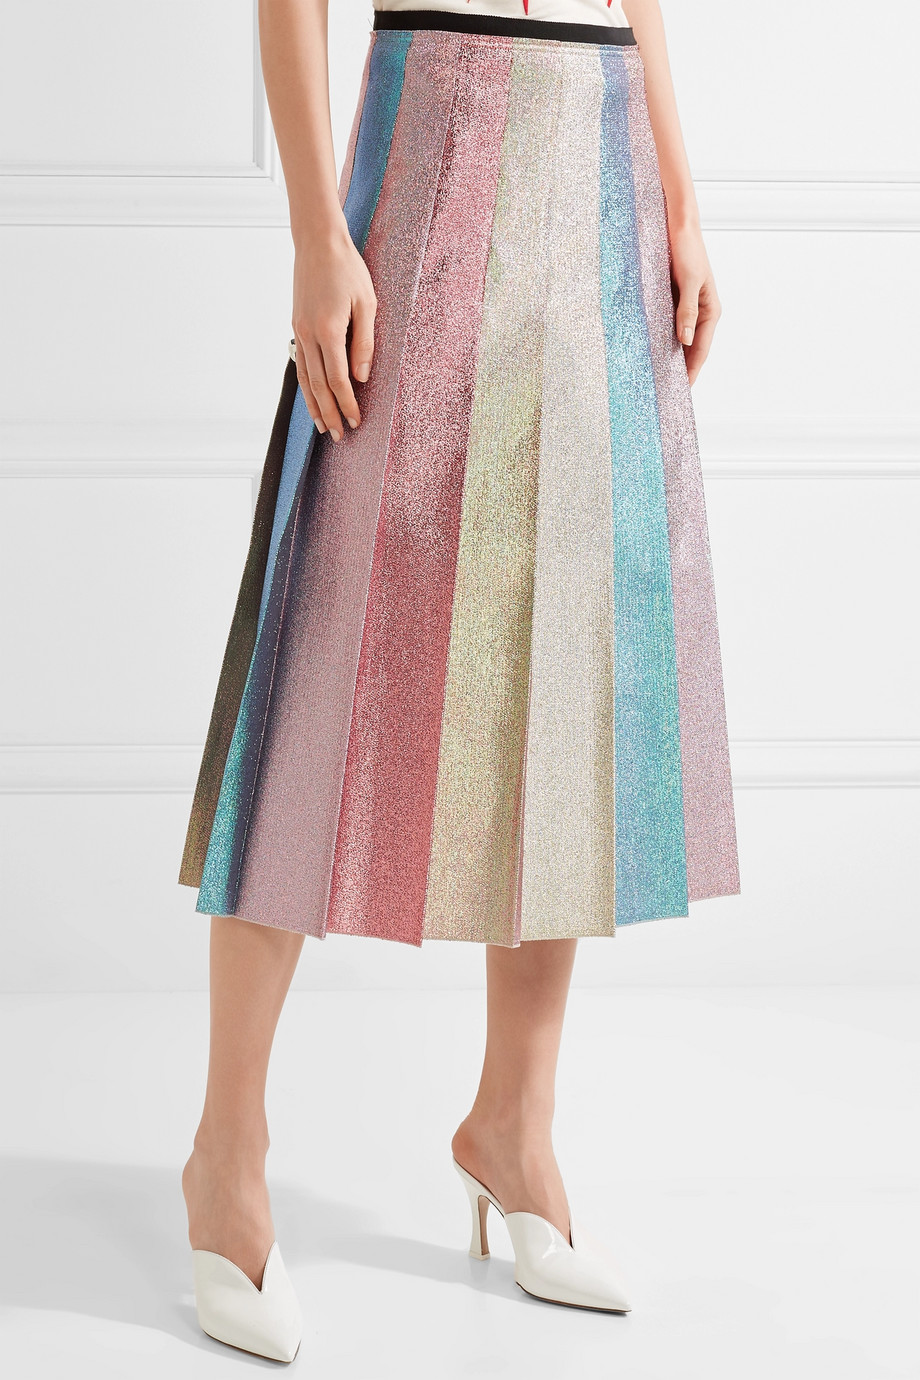 - Gucci / Pleated Lamé Midi Skirt